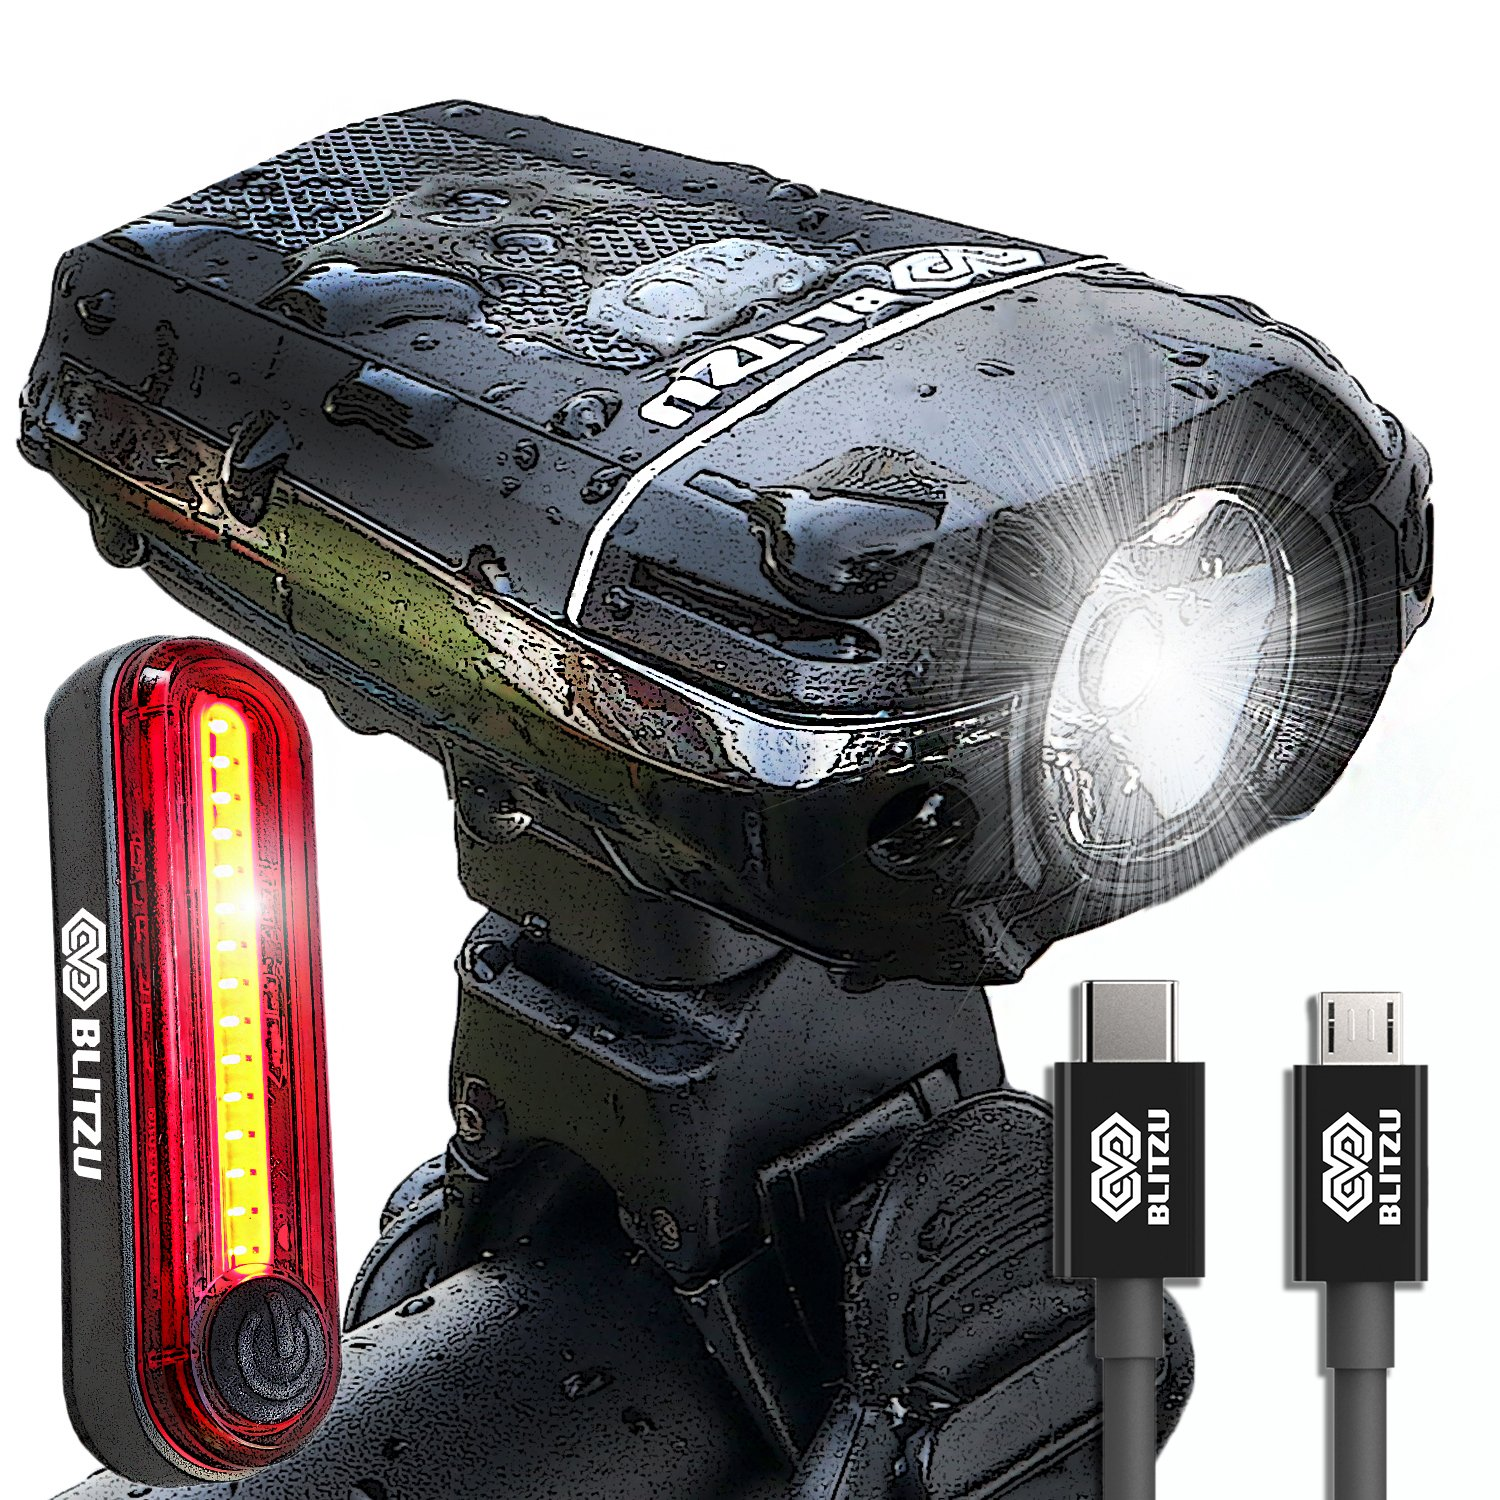 BLITZU Gator 380 USB Rechargeable Bike Light Set POWERFUL Lumens Bicycle Headlight FREE TAIL LIGHT, LED Front and Back Rear Lights Easy To Install for Kids Men Women Road Cycling Safety Flashlight by BLITZU (Image #1)